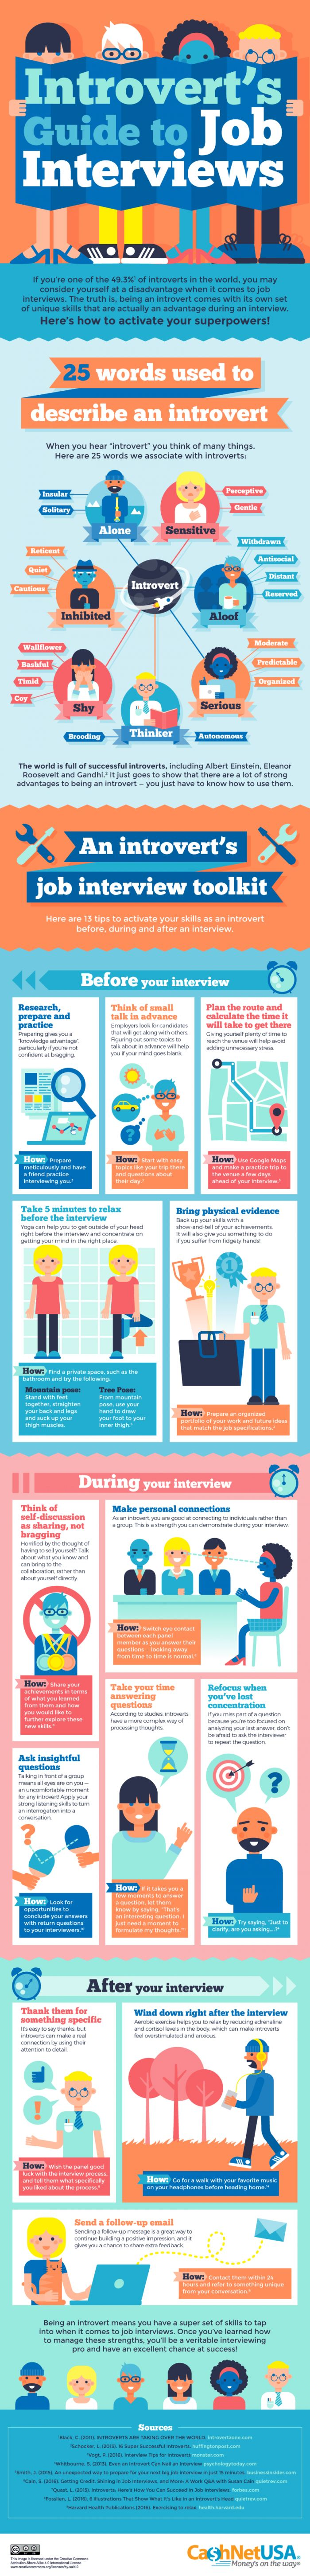 21 best Freelance and Family Life images on Pinterest   Family life ...